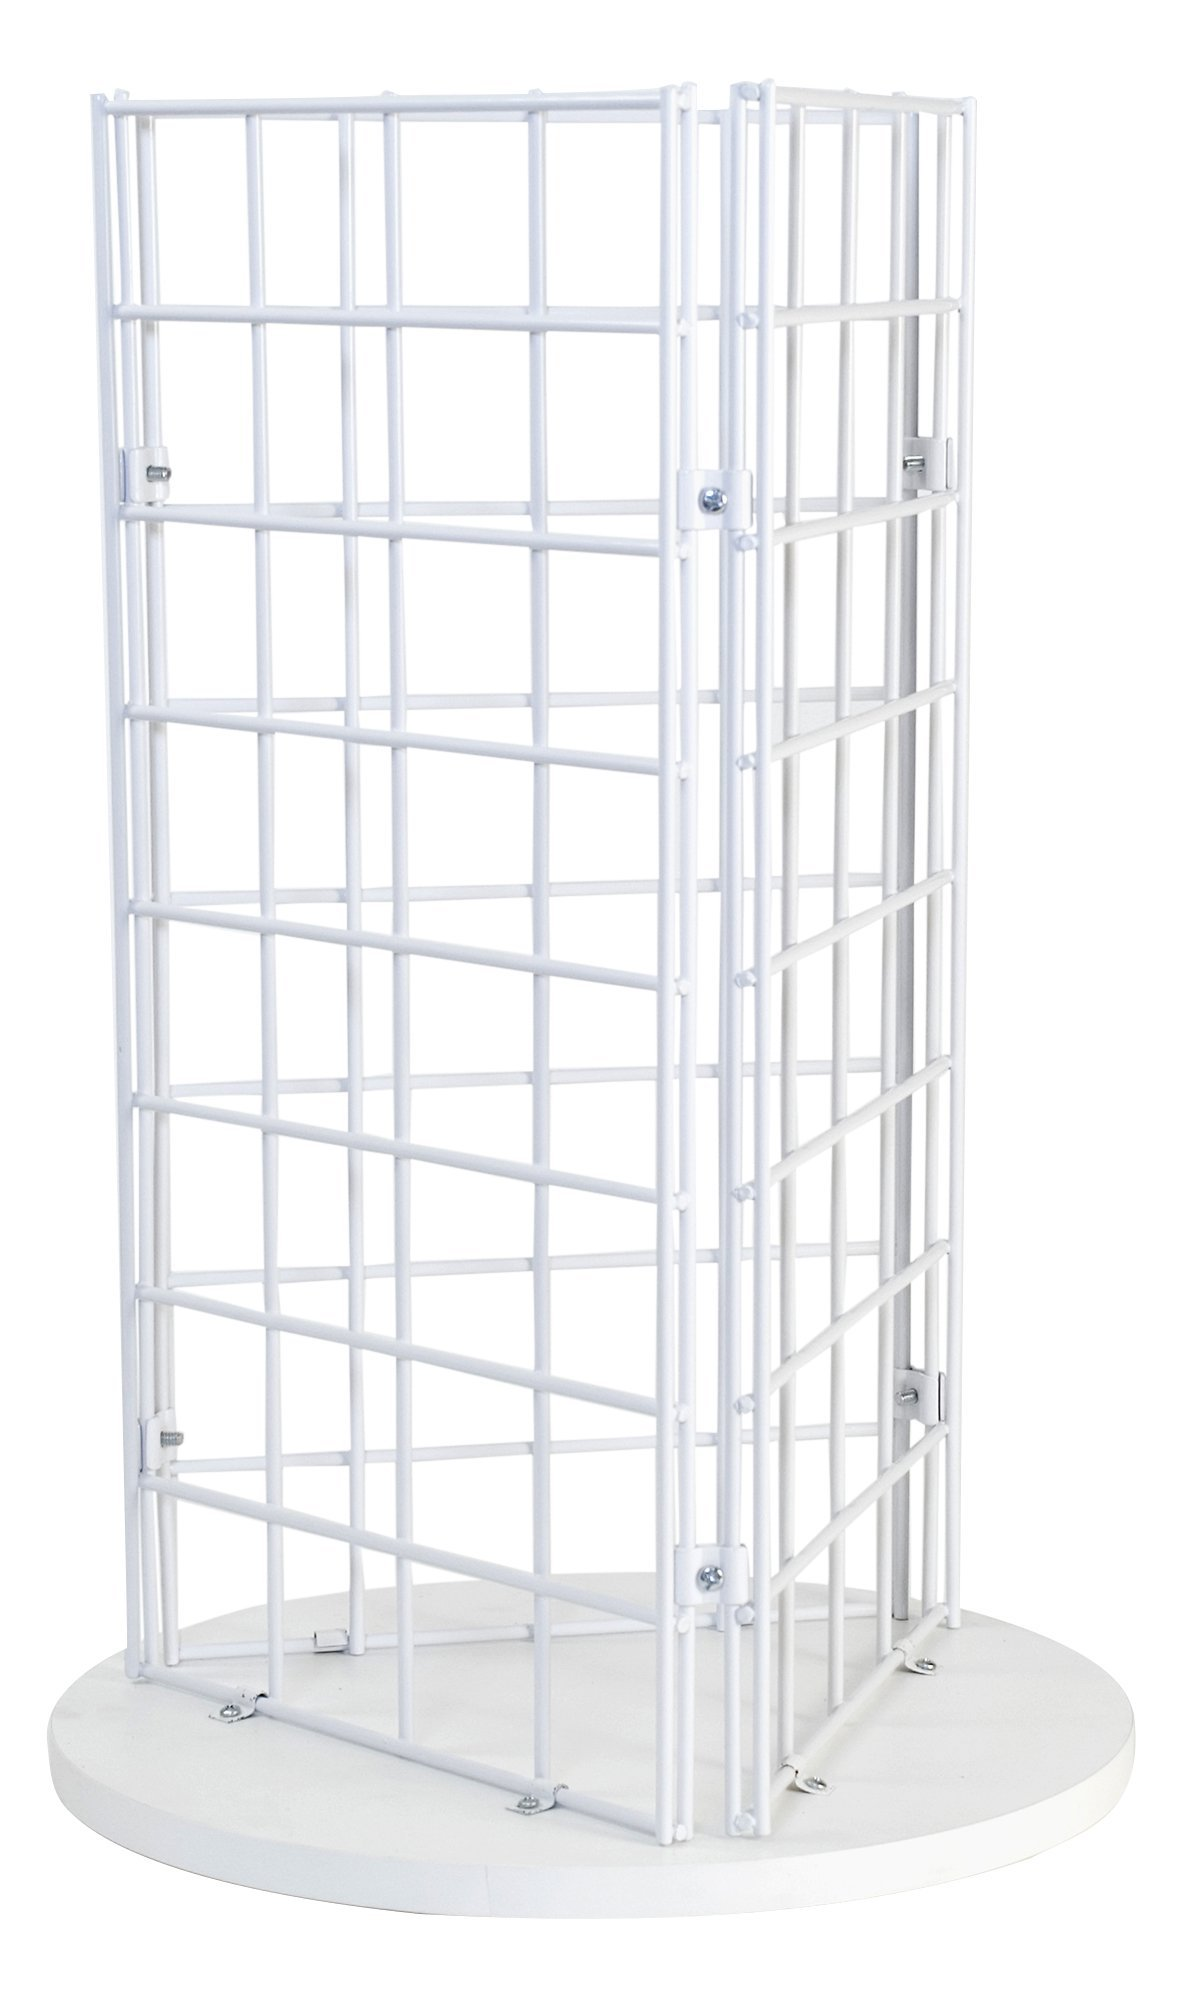 KC Store Fixtures Countertop Spinner Display, 3-Sided Grid 3'' Oc